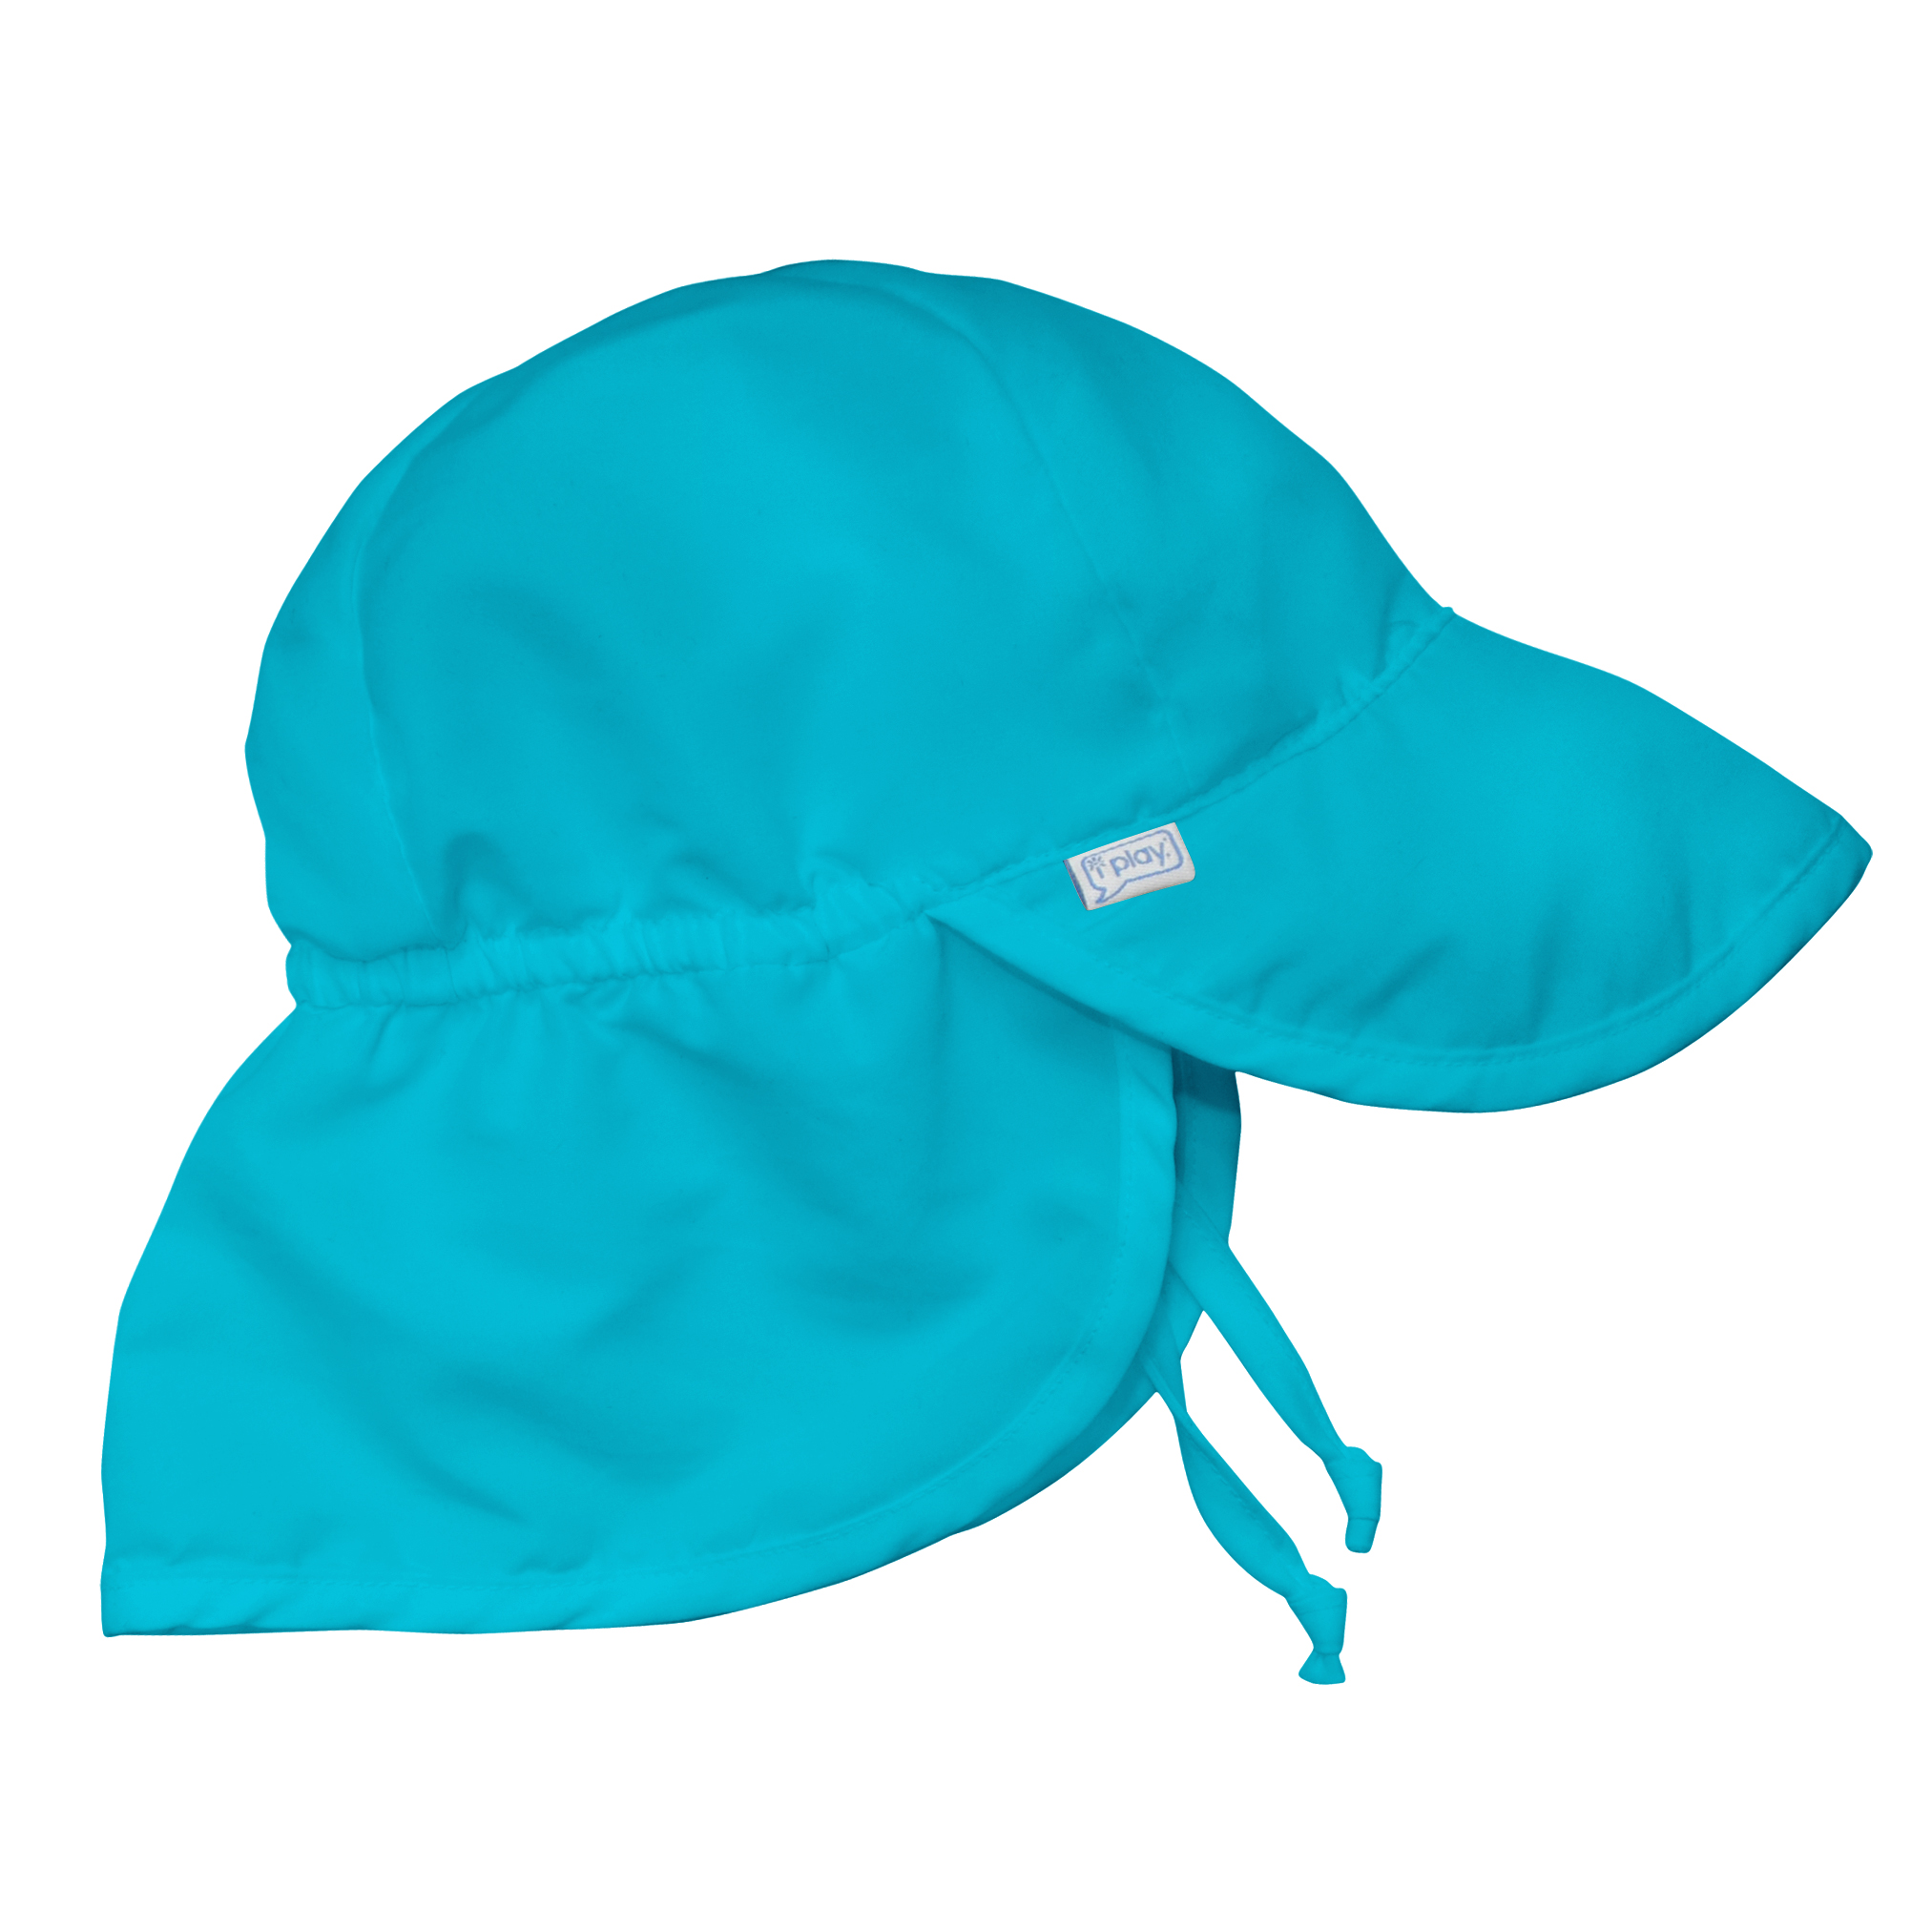 3656_737101-hat-flap-solid-aqua